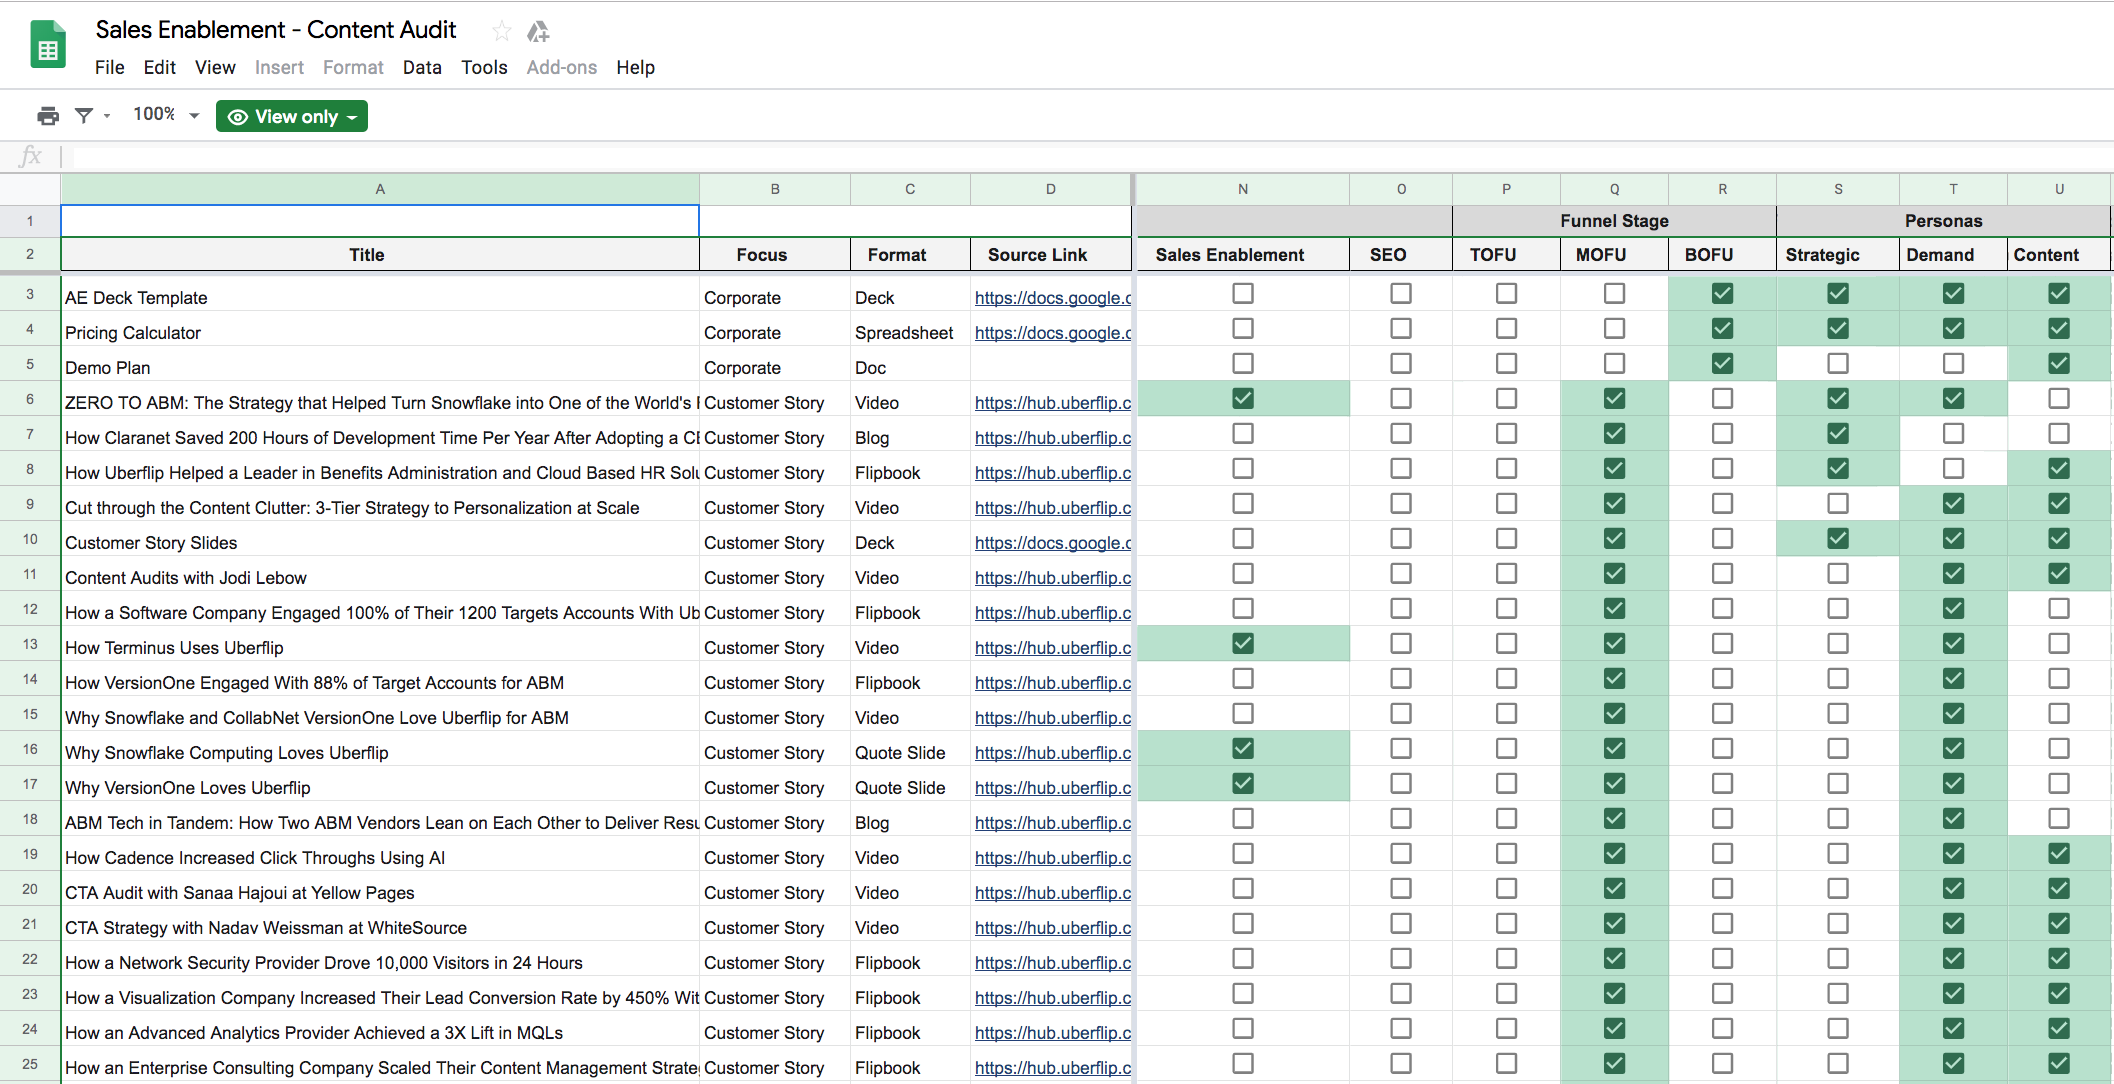 Image of a spreadsheet with content items listed